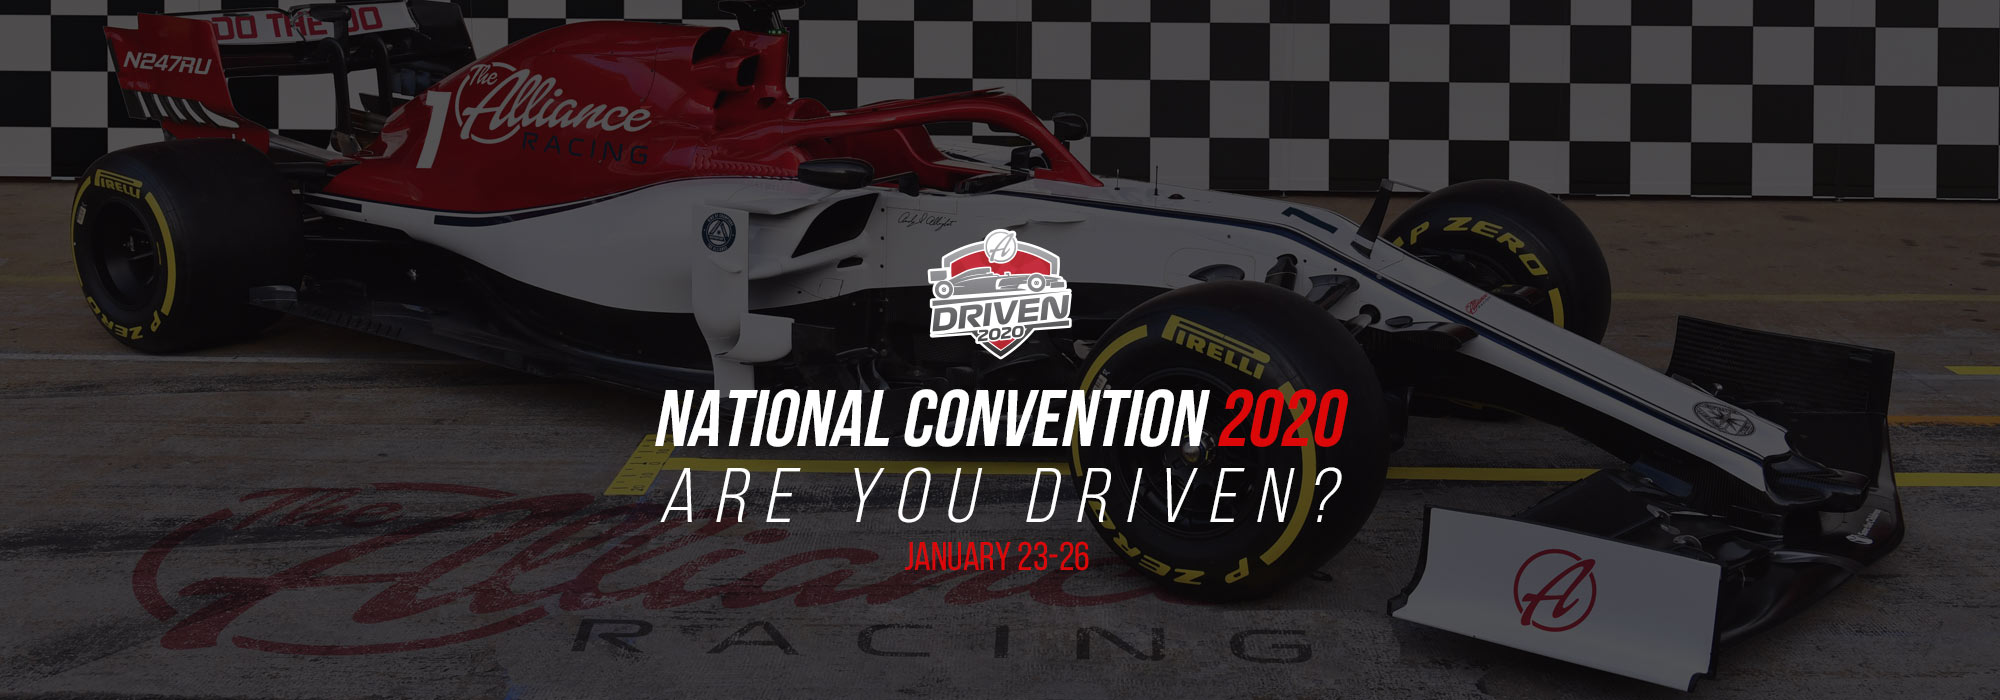 National Convention 2020 - Jan 23rd-26th